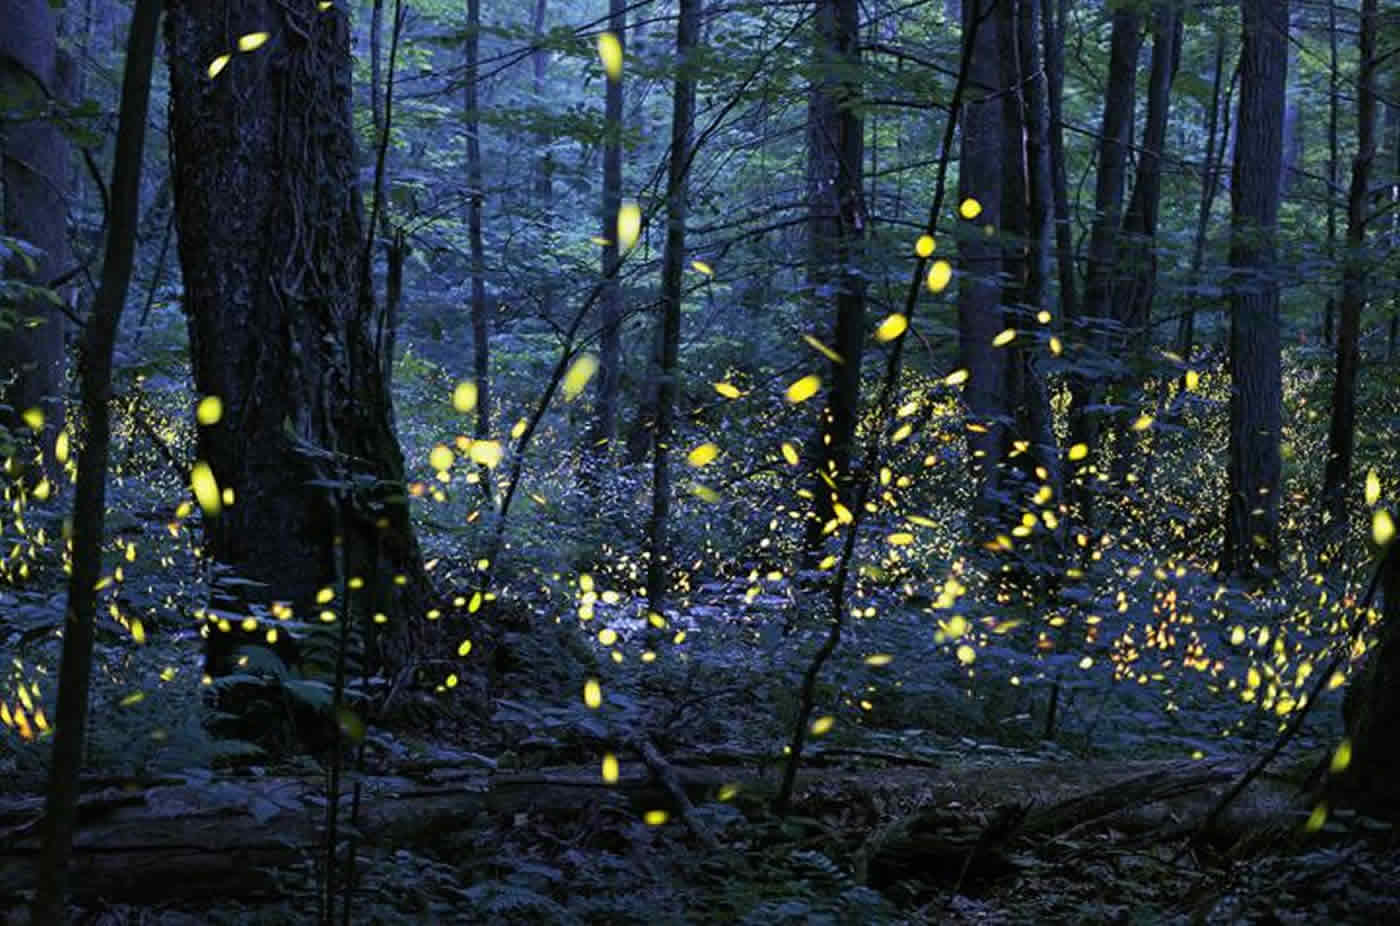 Fireflies are shown.